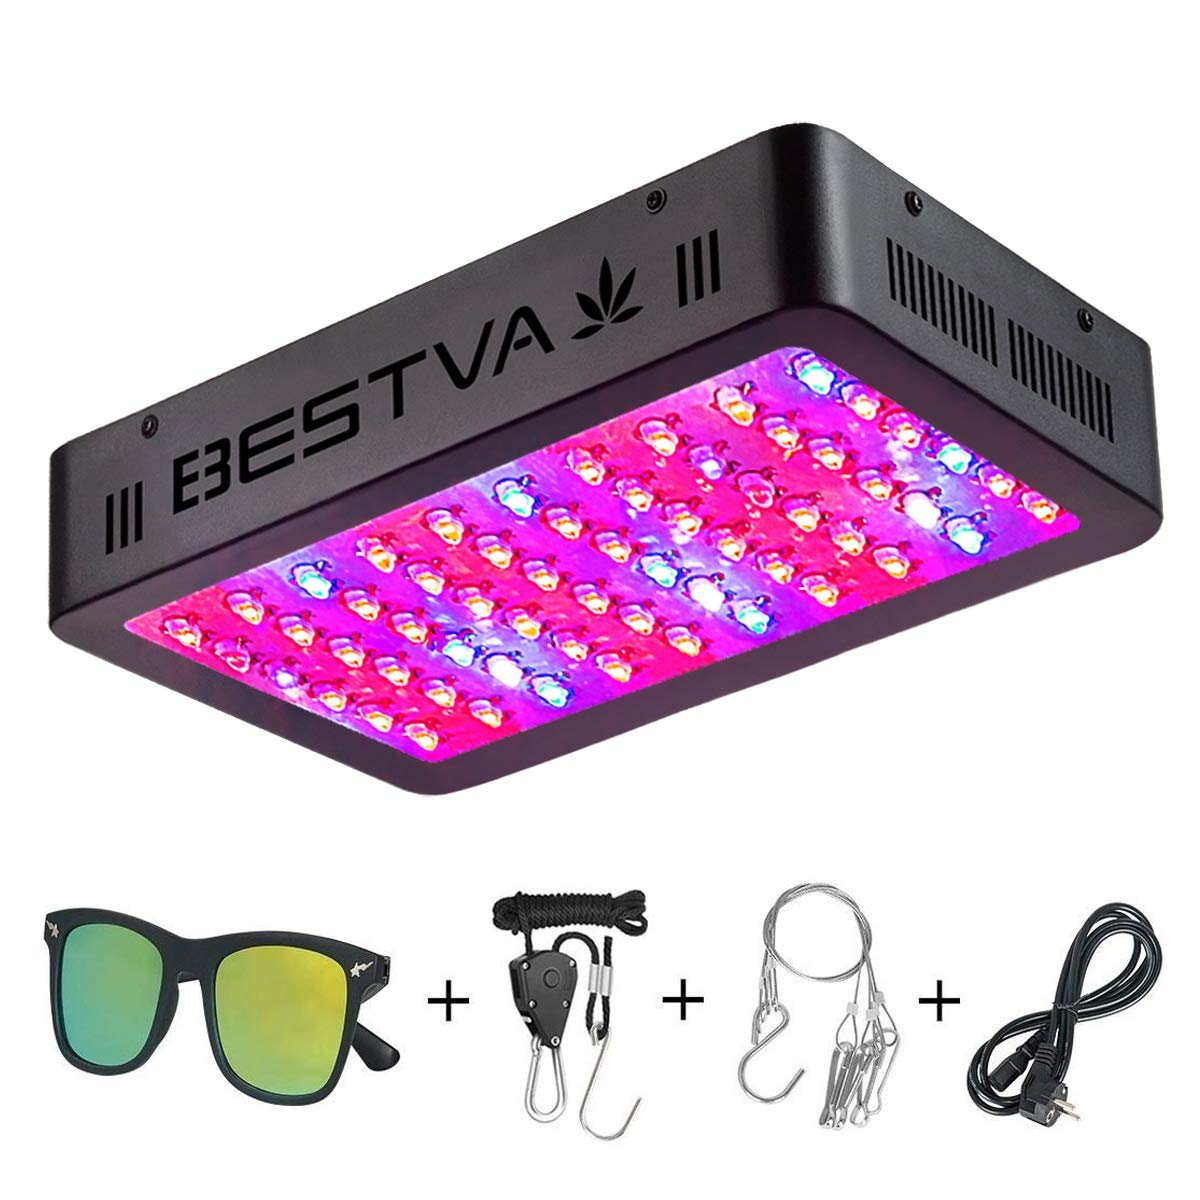 BESTVA 600W LED Grow Light Full Spectrum Dual-Chip Growing Lamp for Hydroponic Indoor Plants Veg and Flower by BESTVA (Image #1)